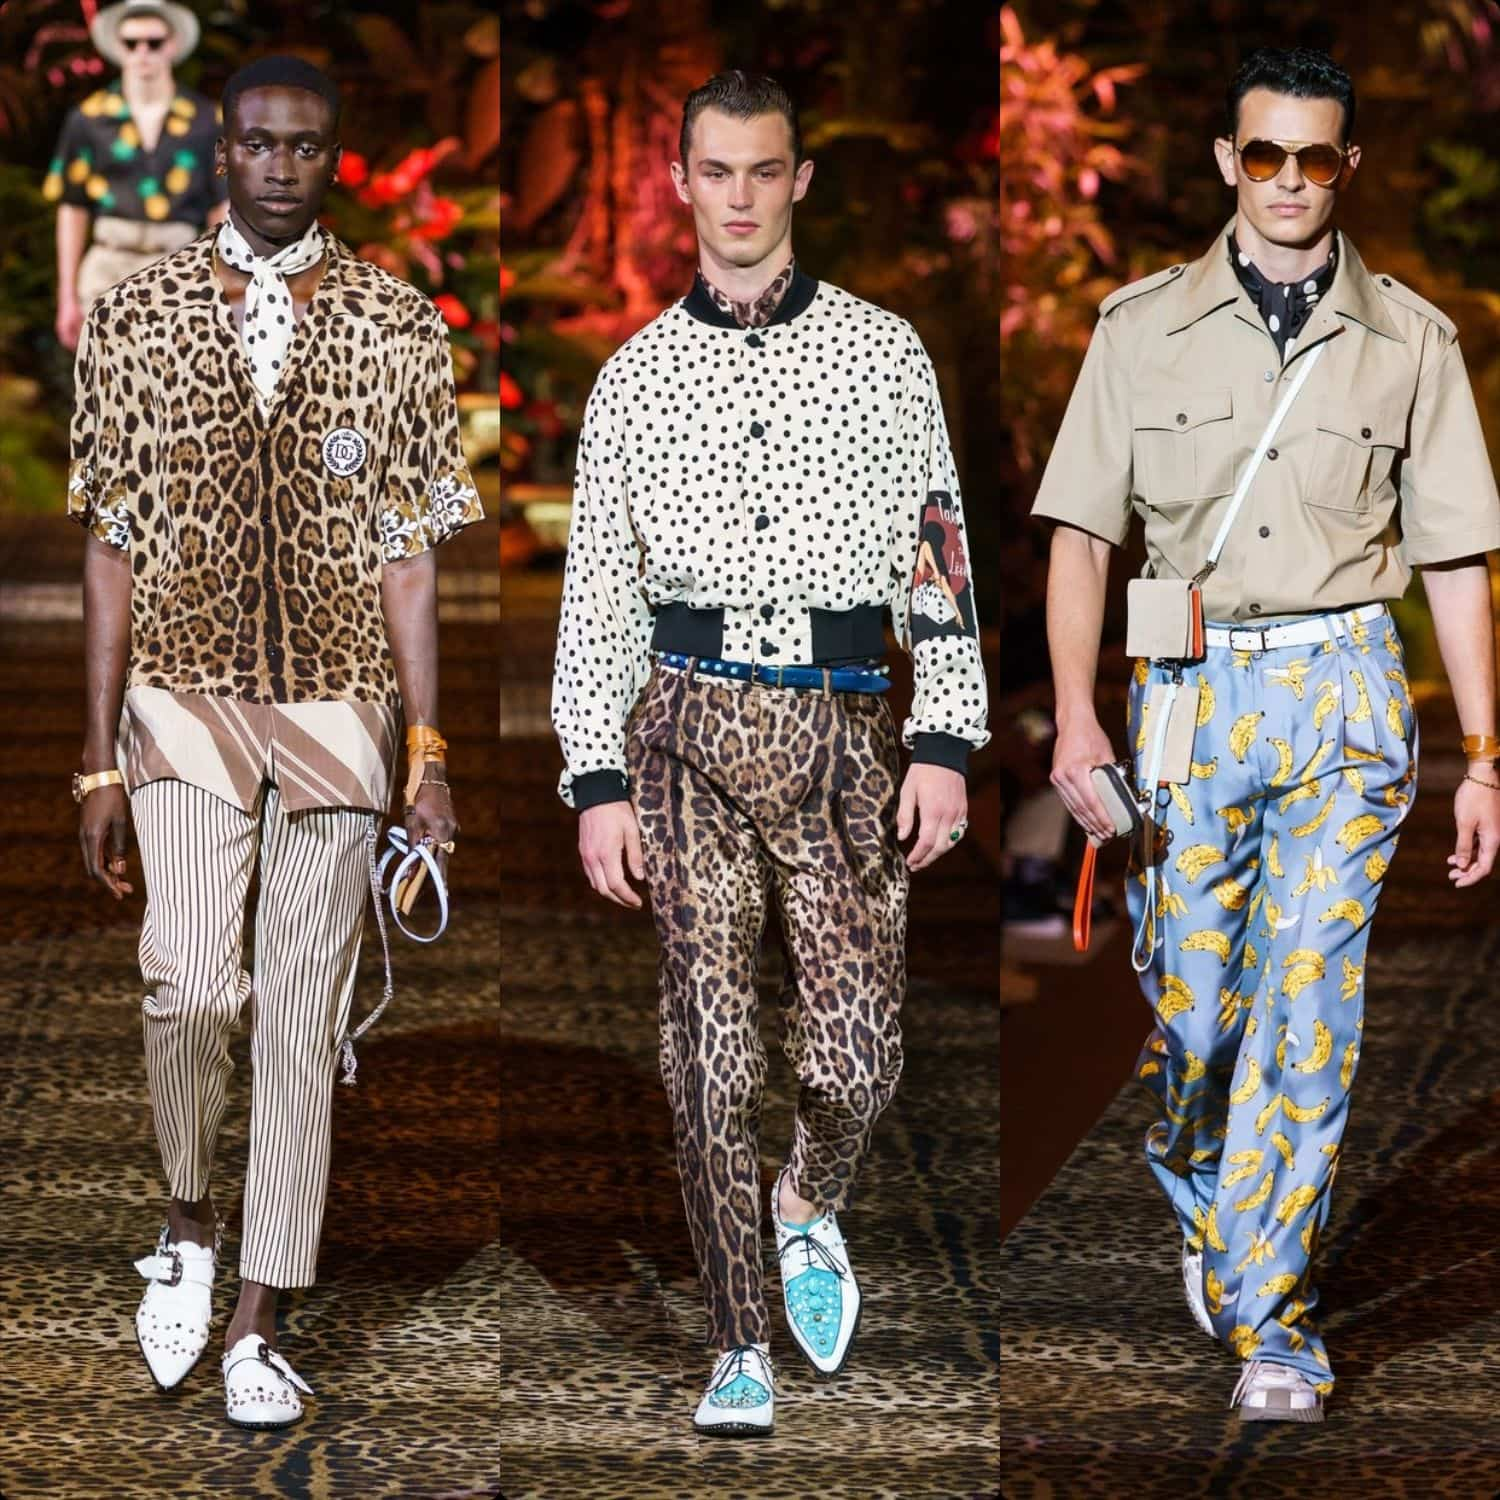 Dolce & Gabbana Menswear Spring-Summer 2020 Milan. RUNWAY MAGAZINE ® Collections. RUNWAY NOW / RUNWAY NEW